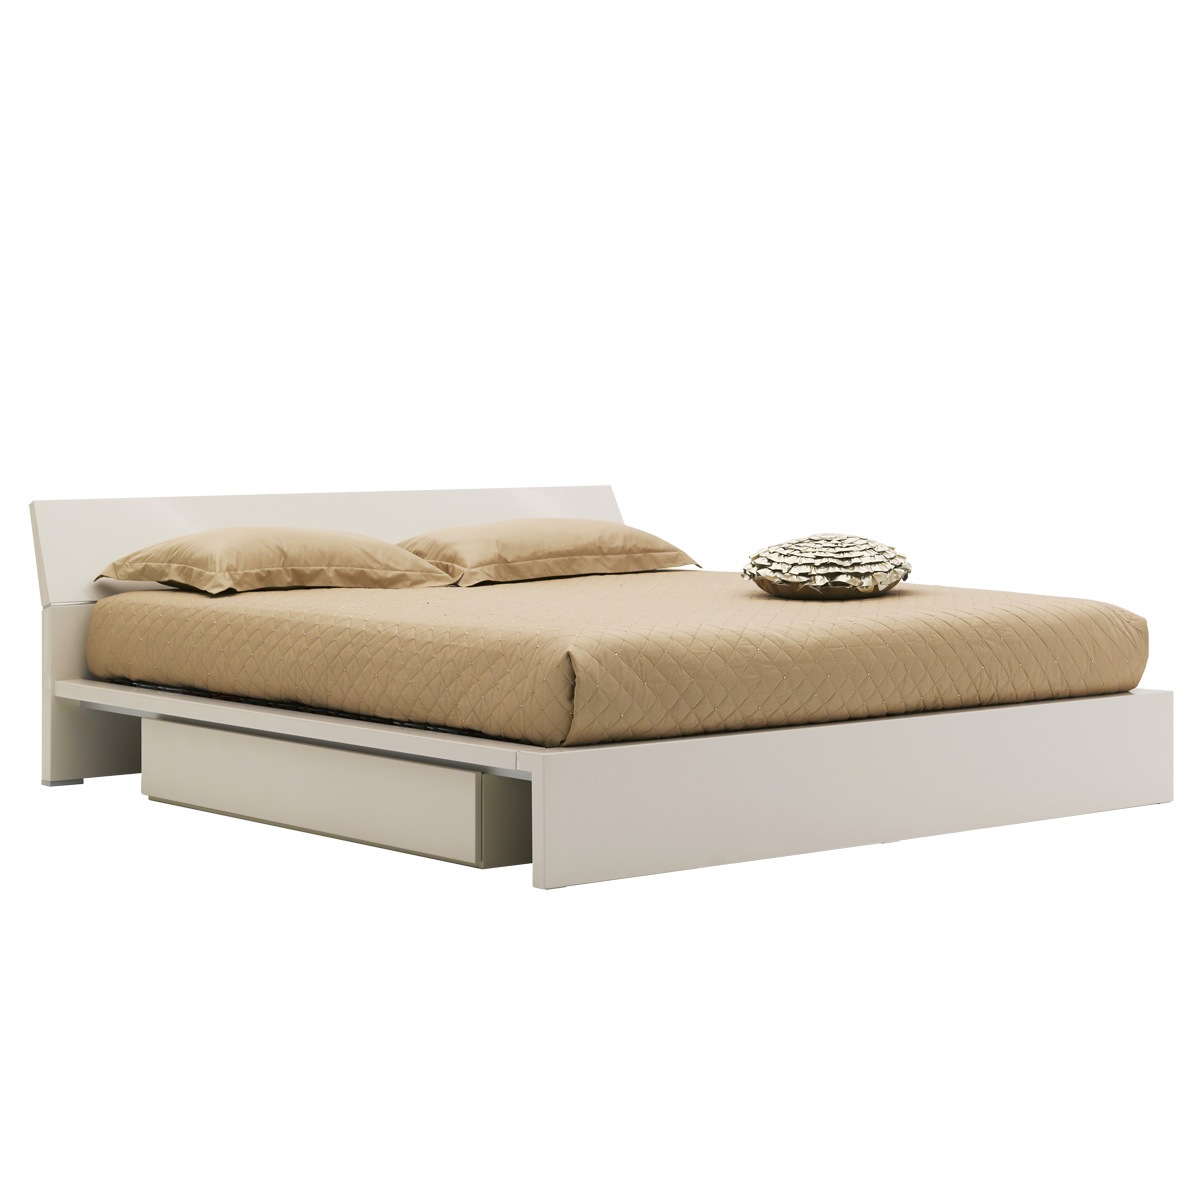 Cassetti storage bed king glossy beige beyond furniture for Beds sydney